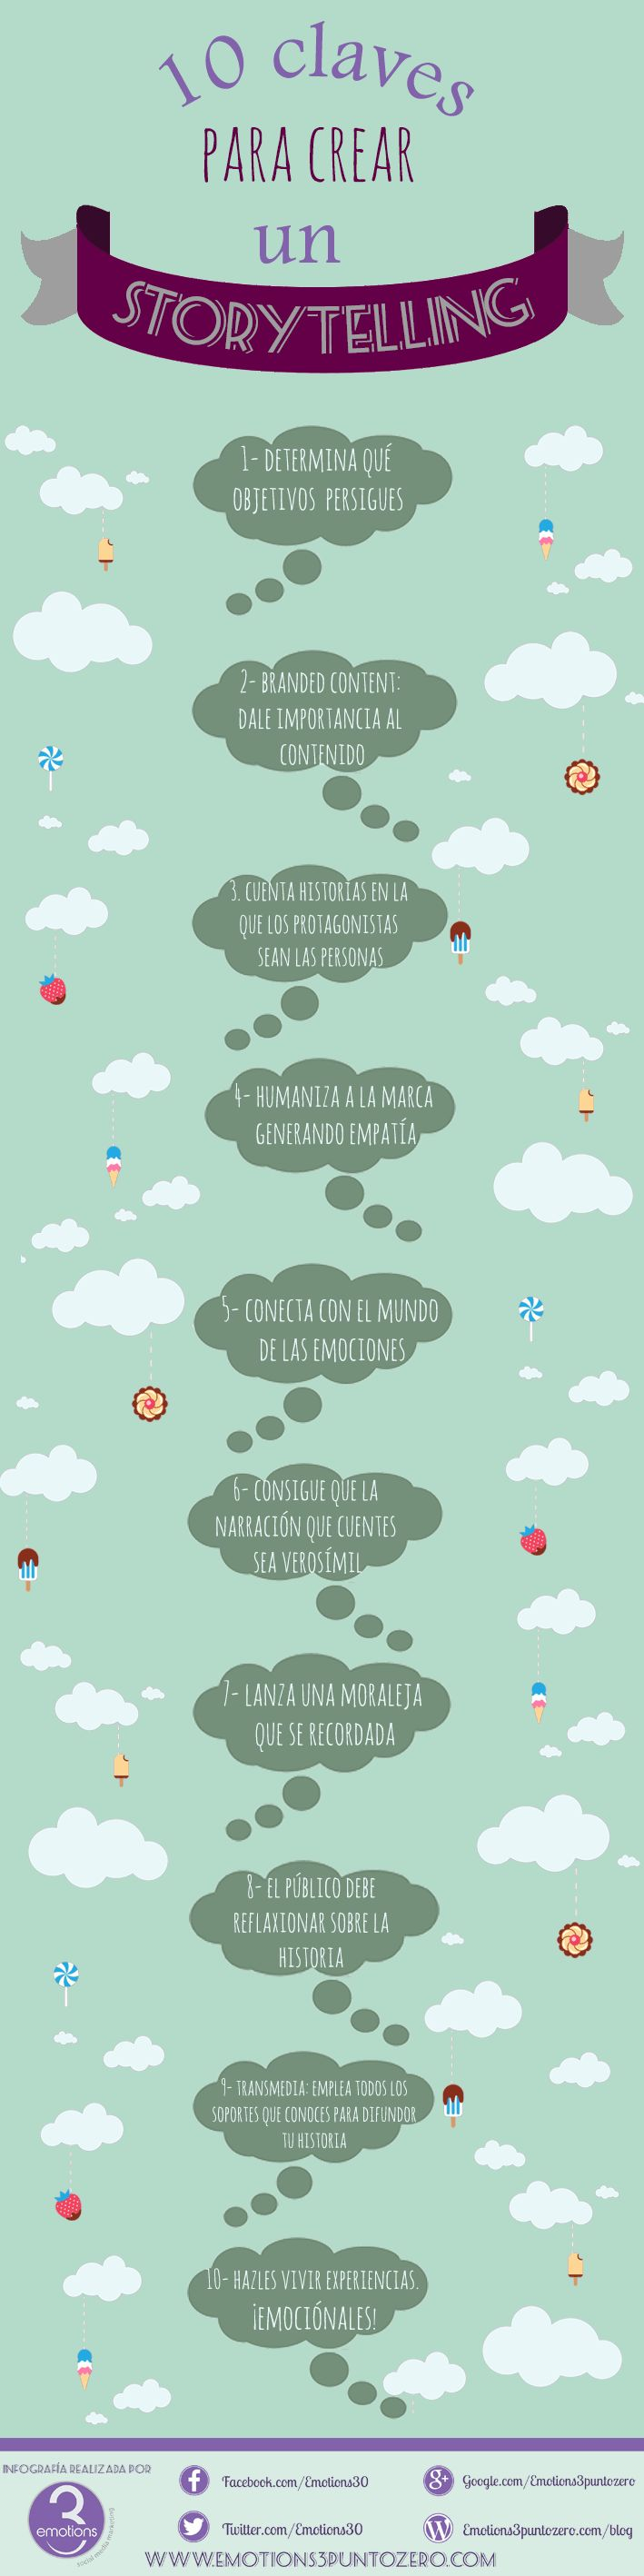 10 CLAVES PARA CREAR UN STORYTELLING #INFOGRAFIA #INFOGRAPHIC #MARKETING